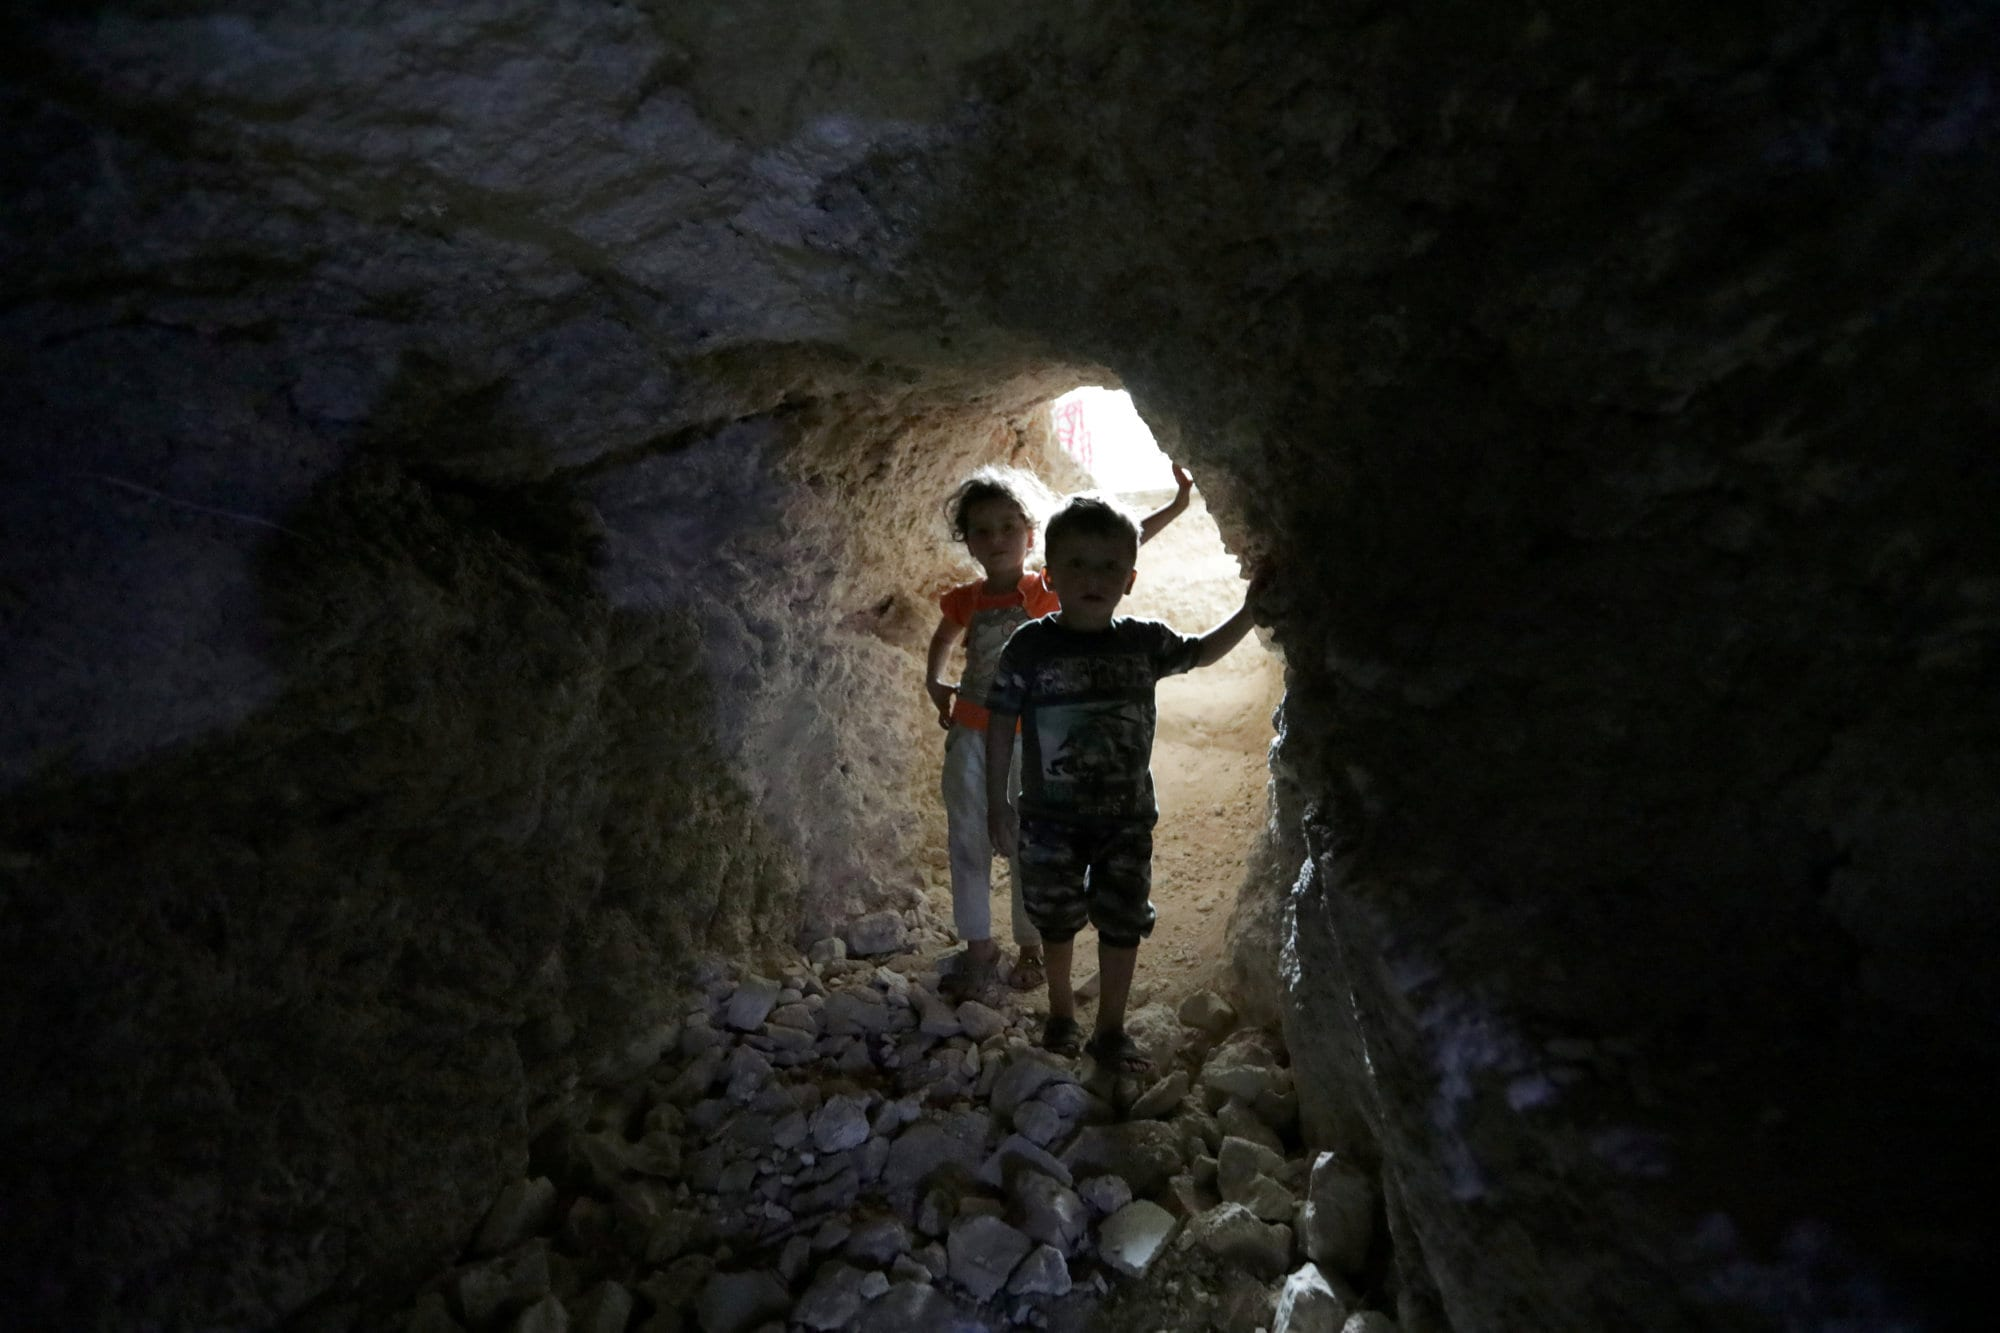 [Children walk in a makeshift shelter in an underground cave in Idlib, Syria September 3, 2018. (Photo: Khalil Ashawi / Reuters)]